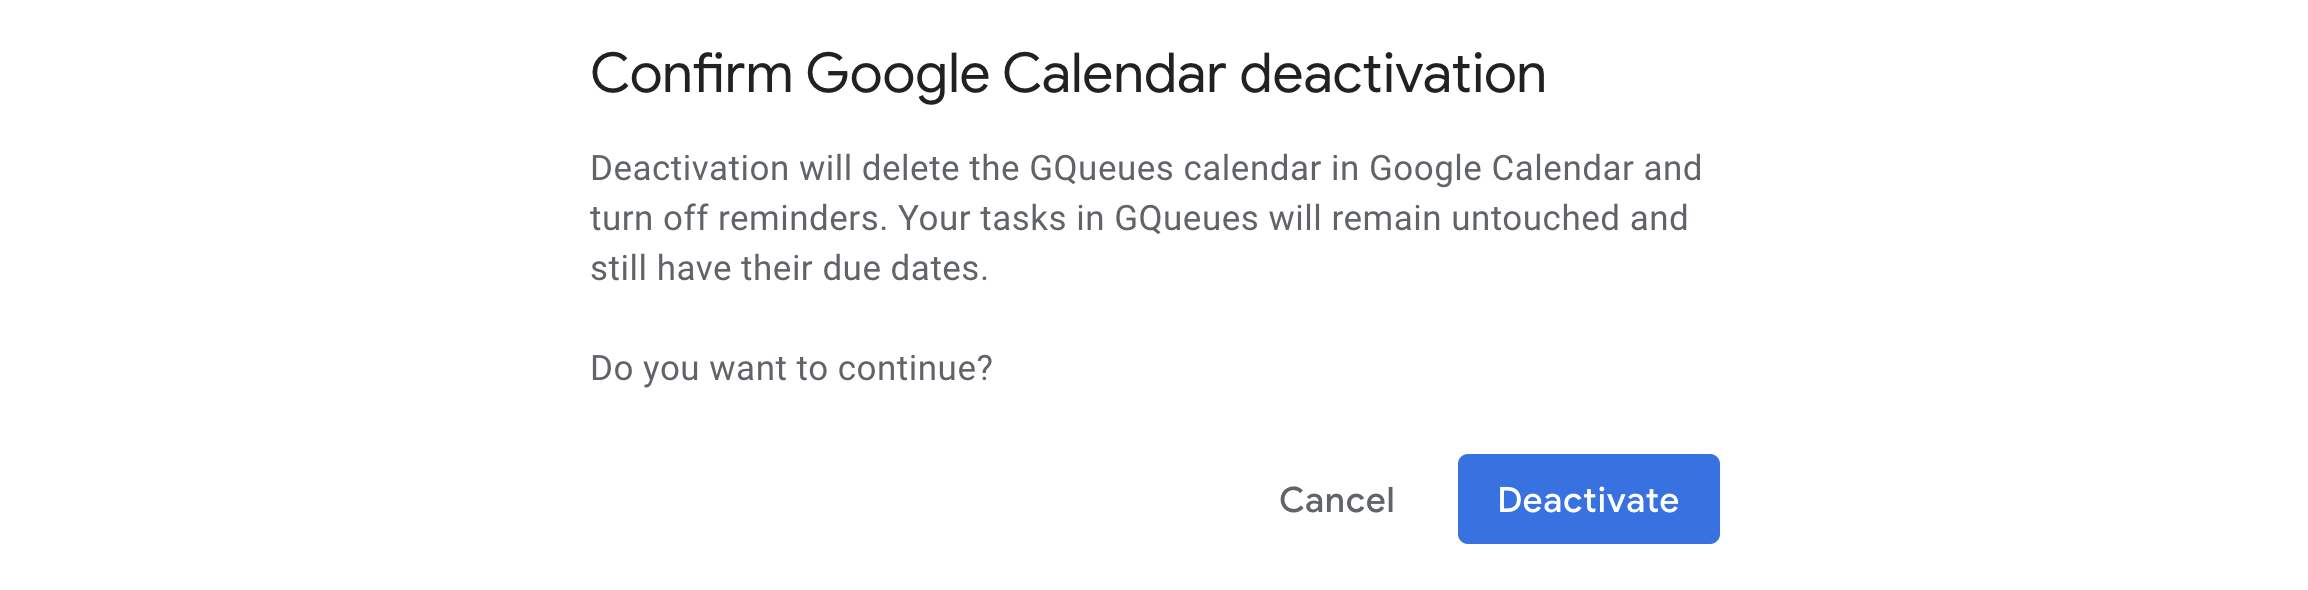 Confirm you want to continue with deactivating calendar syncing